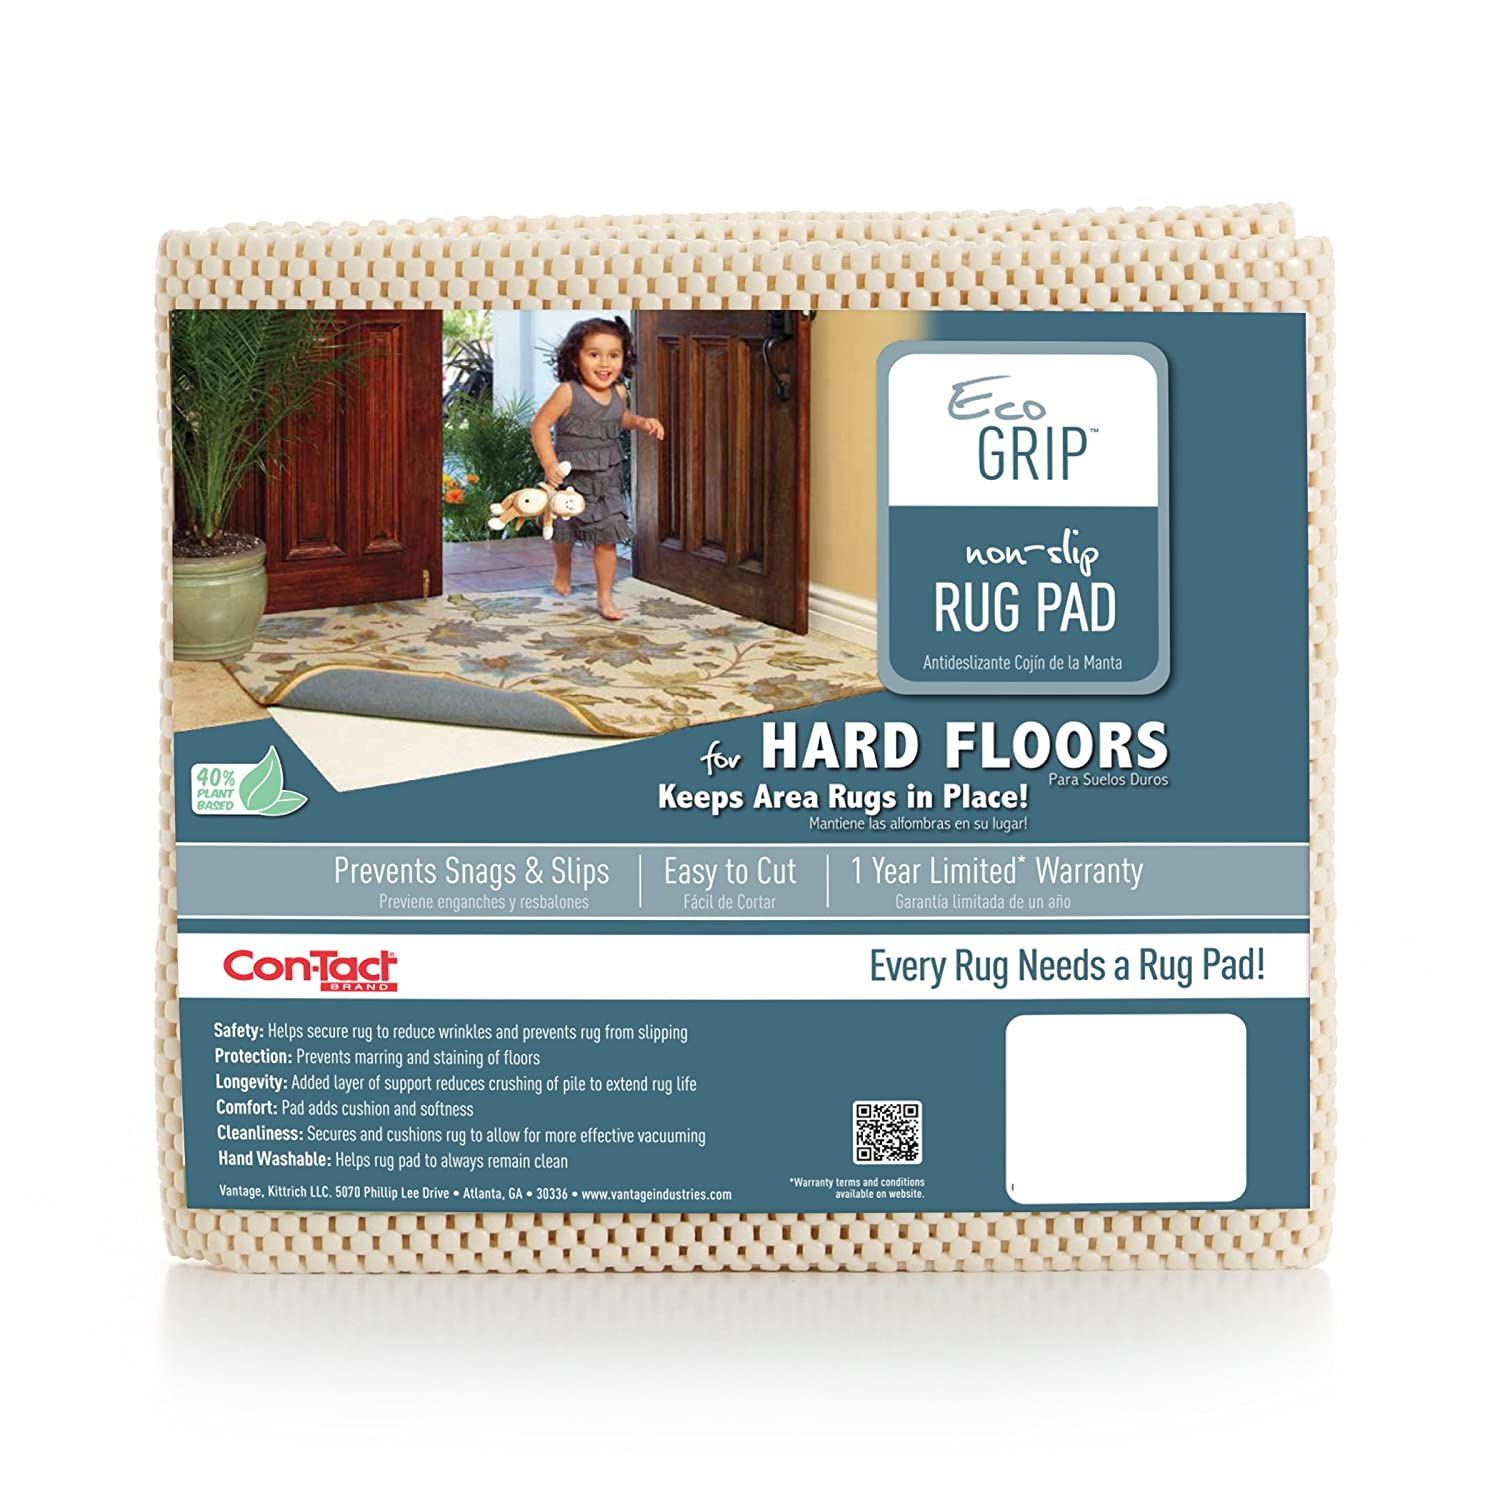 Amazon.com: Con-Tact Rug Pad 6x9, Non-Slip Area Rug Pad, Eco-Grip for Hard Floors: Kitchen & Dining